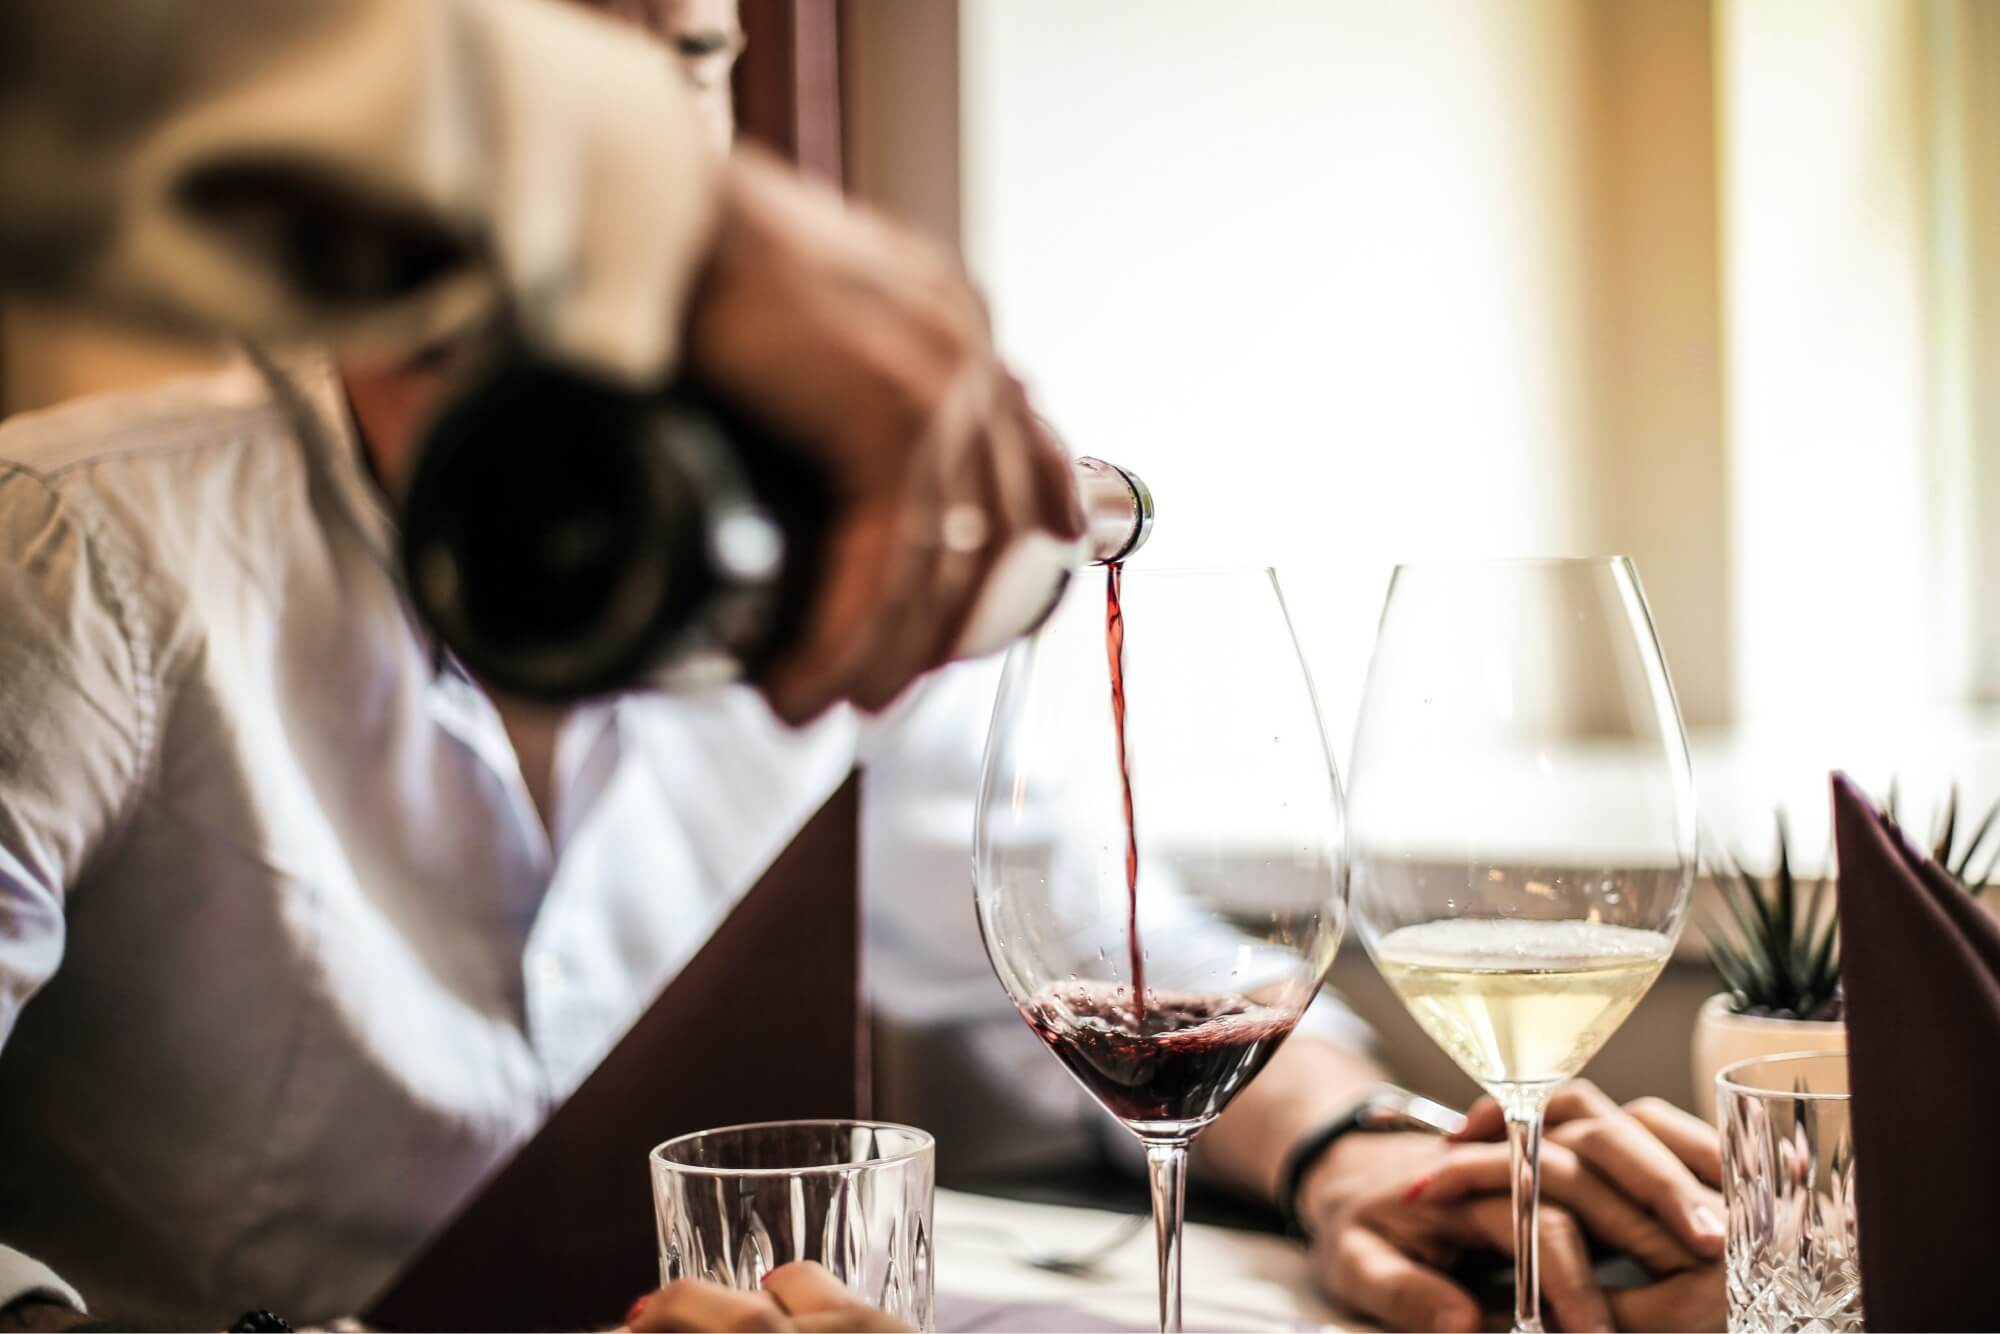 A hand pouring a glass of red wine at a fine dining restaurant that charges corkage fees.